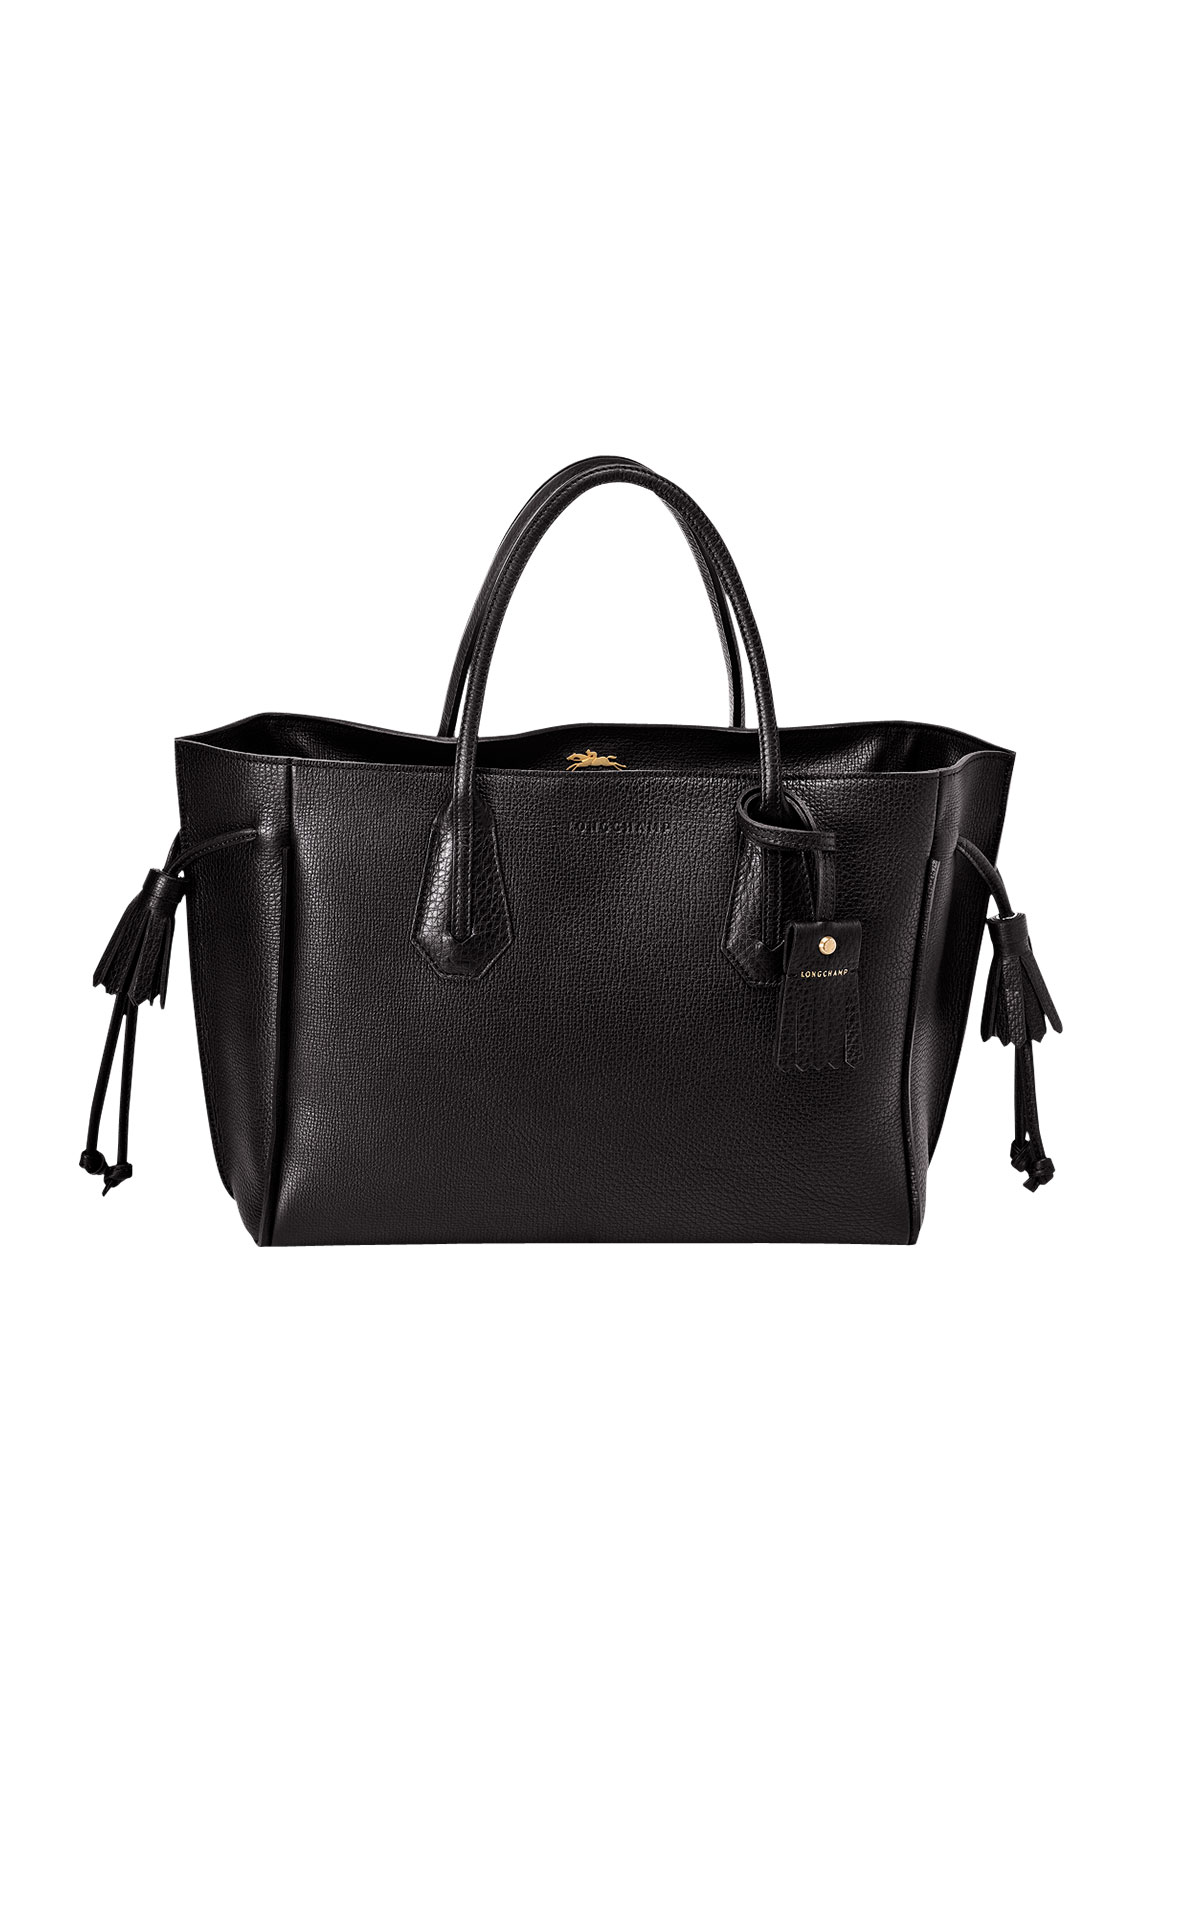 Black Penélope bag Longchamp